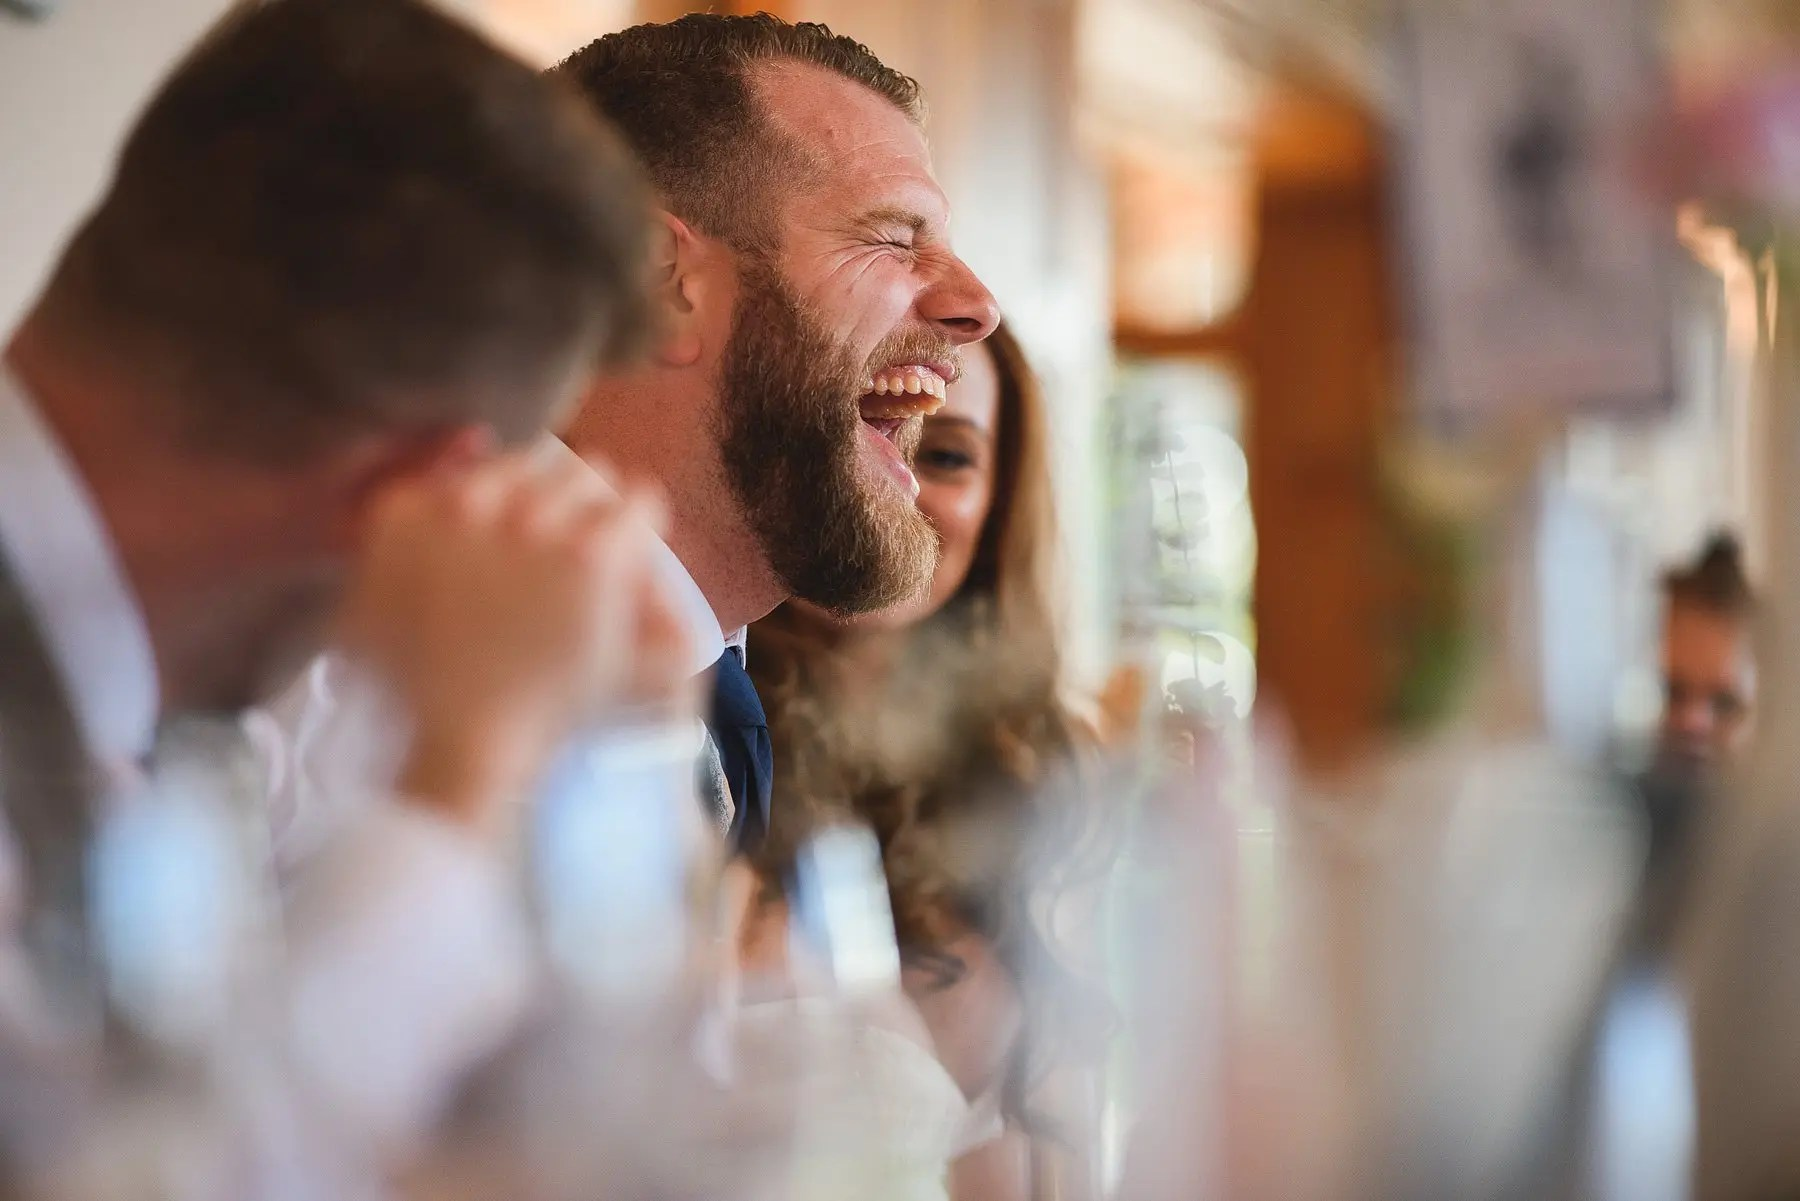 man laughing at wedding speech